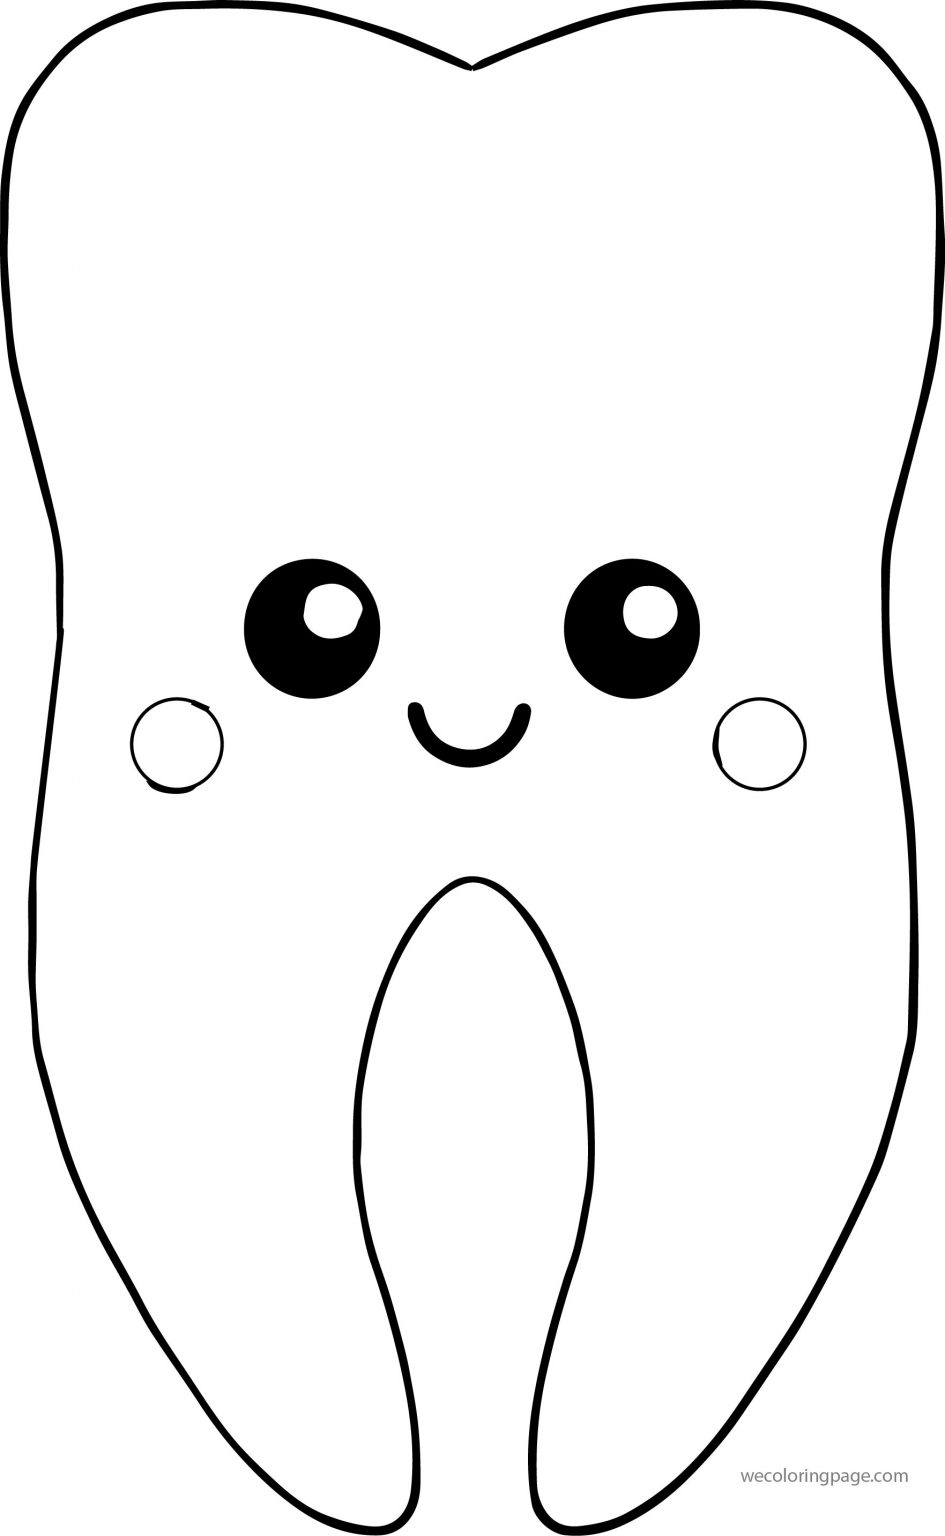 tooth coloring pages - tooth coloring page coloring page cartoon teeth with toothbrush and dental floss stock for kids